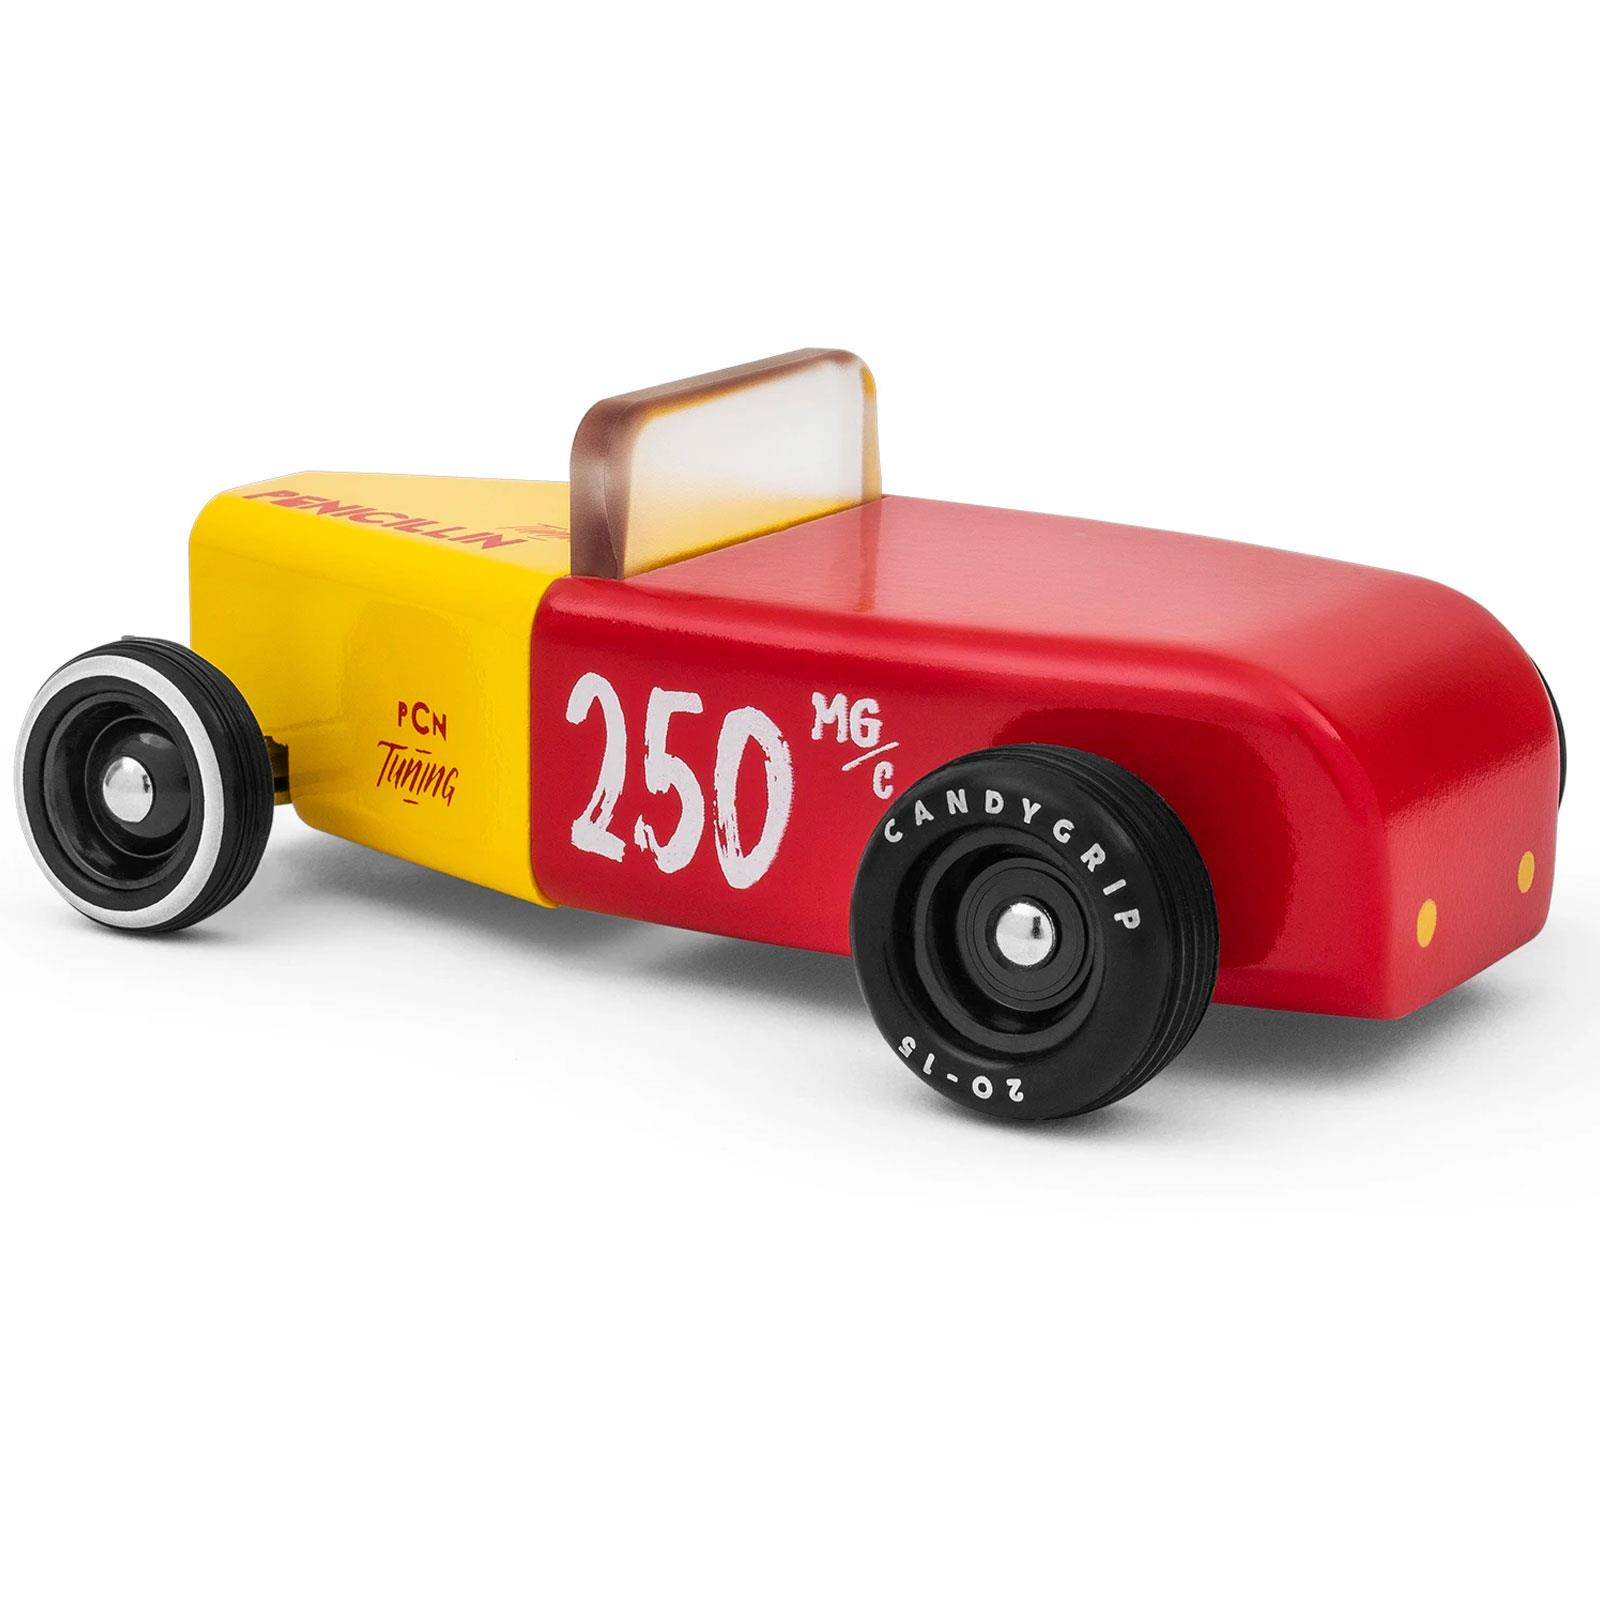 Candylab Wooden Toy Car Diecast American Classic Vintage Collectable New /& Boxed